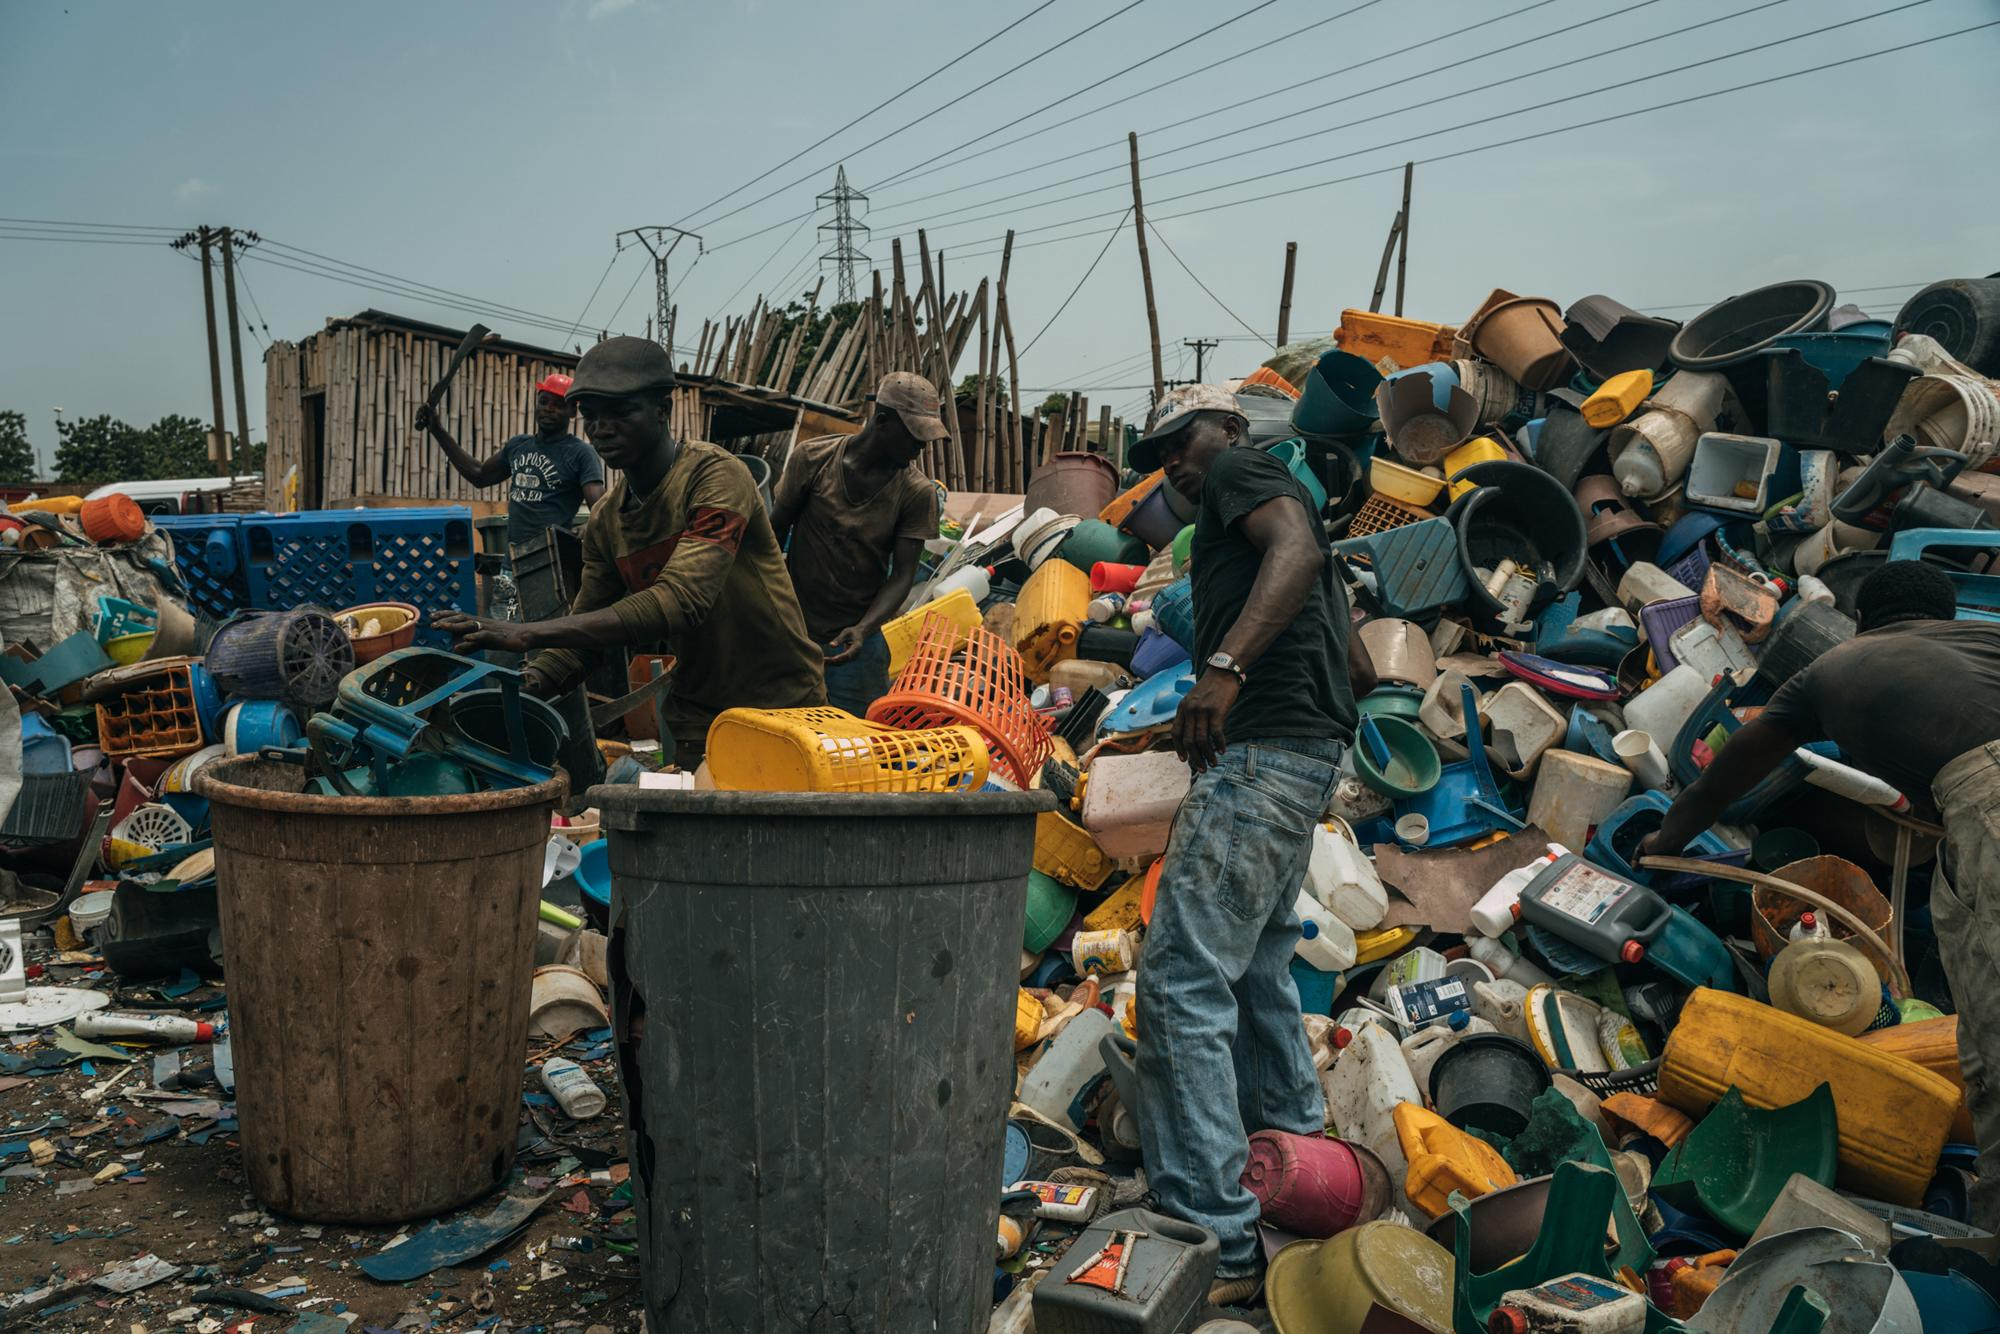 Workers at Accra waste management plant segregating plastic waste. Accra waste collection project was one of 6 winners of the best climate project in the world announced by C40 and Bloomberg Philanthropies at the 2019. Story for AP Bloomberg Philanthropies.